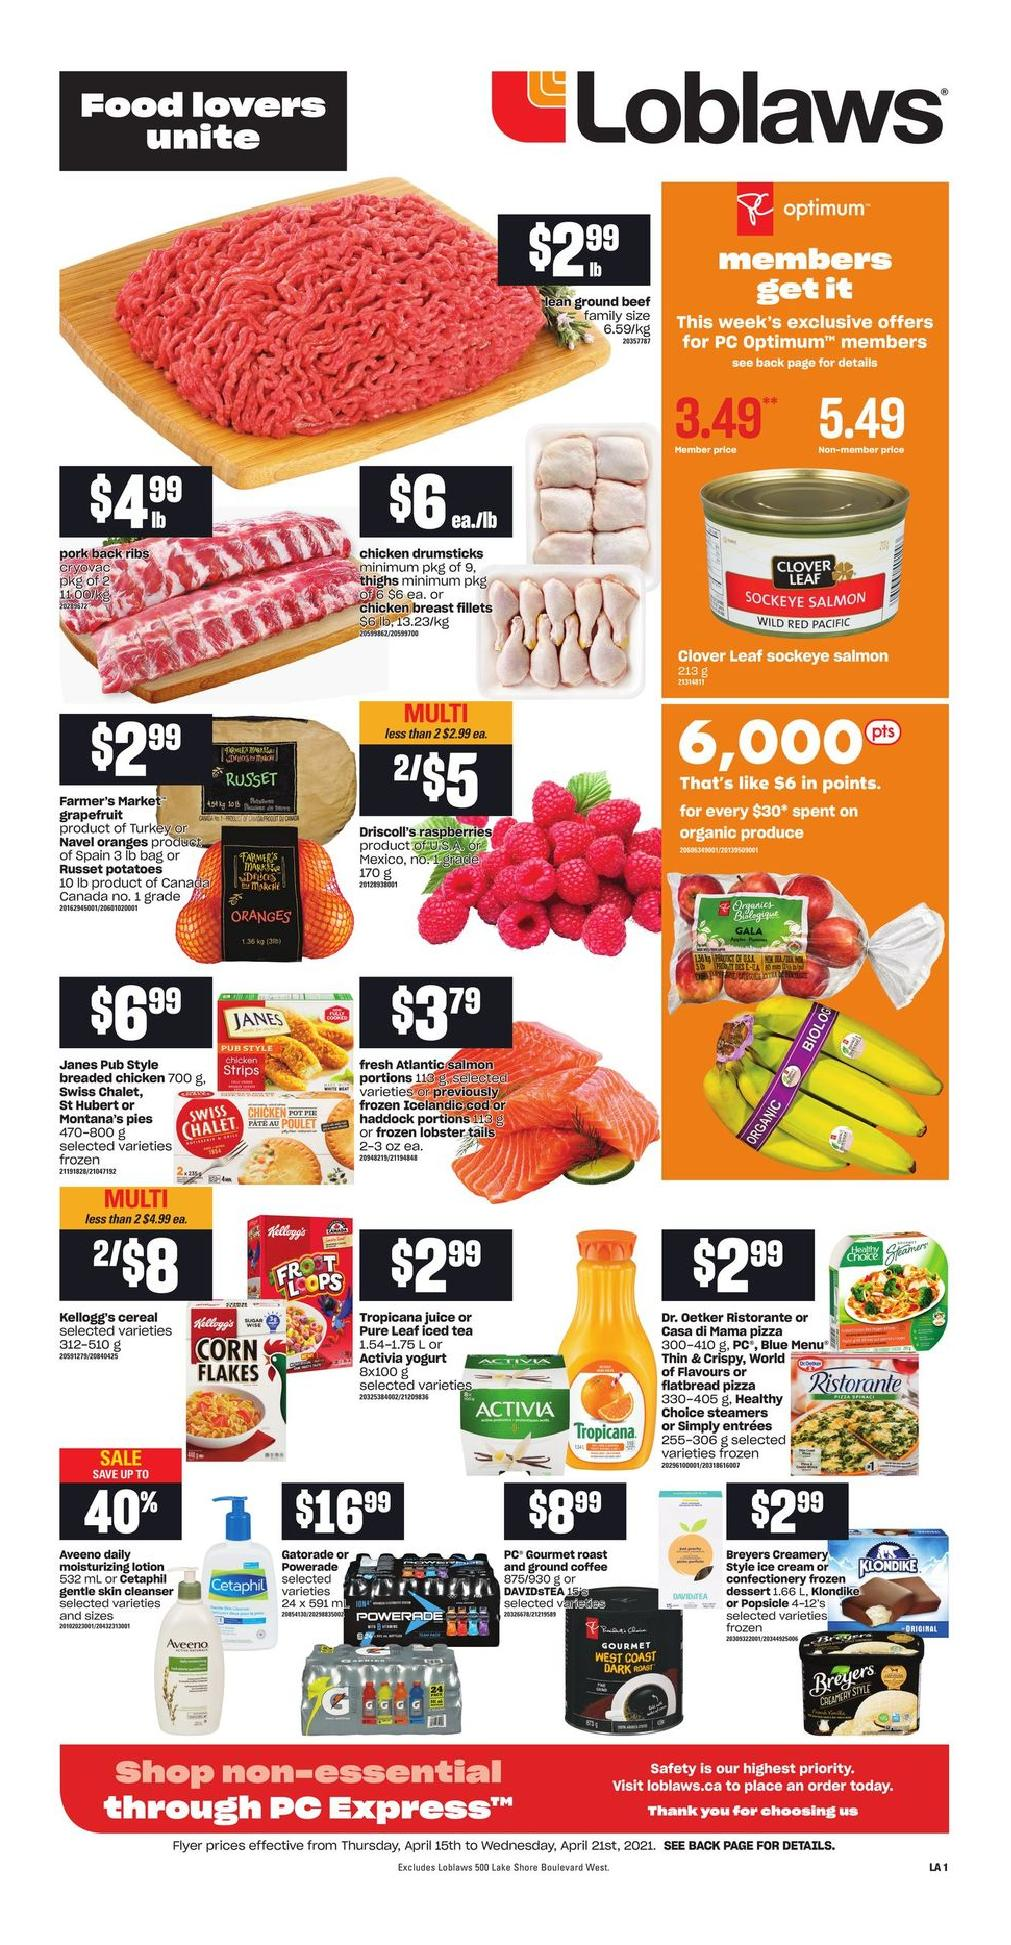 01 Loblaws Flyer April 15 April 21 2021